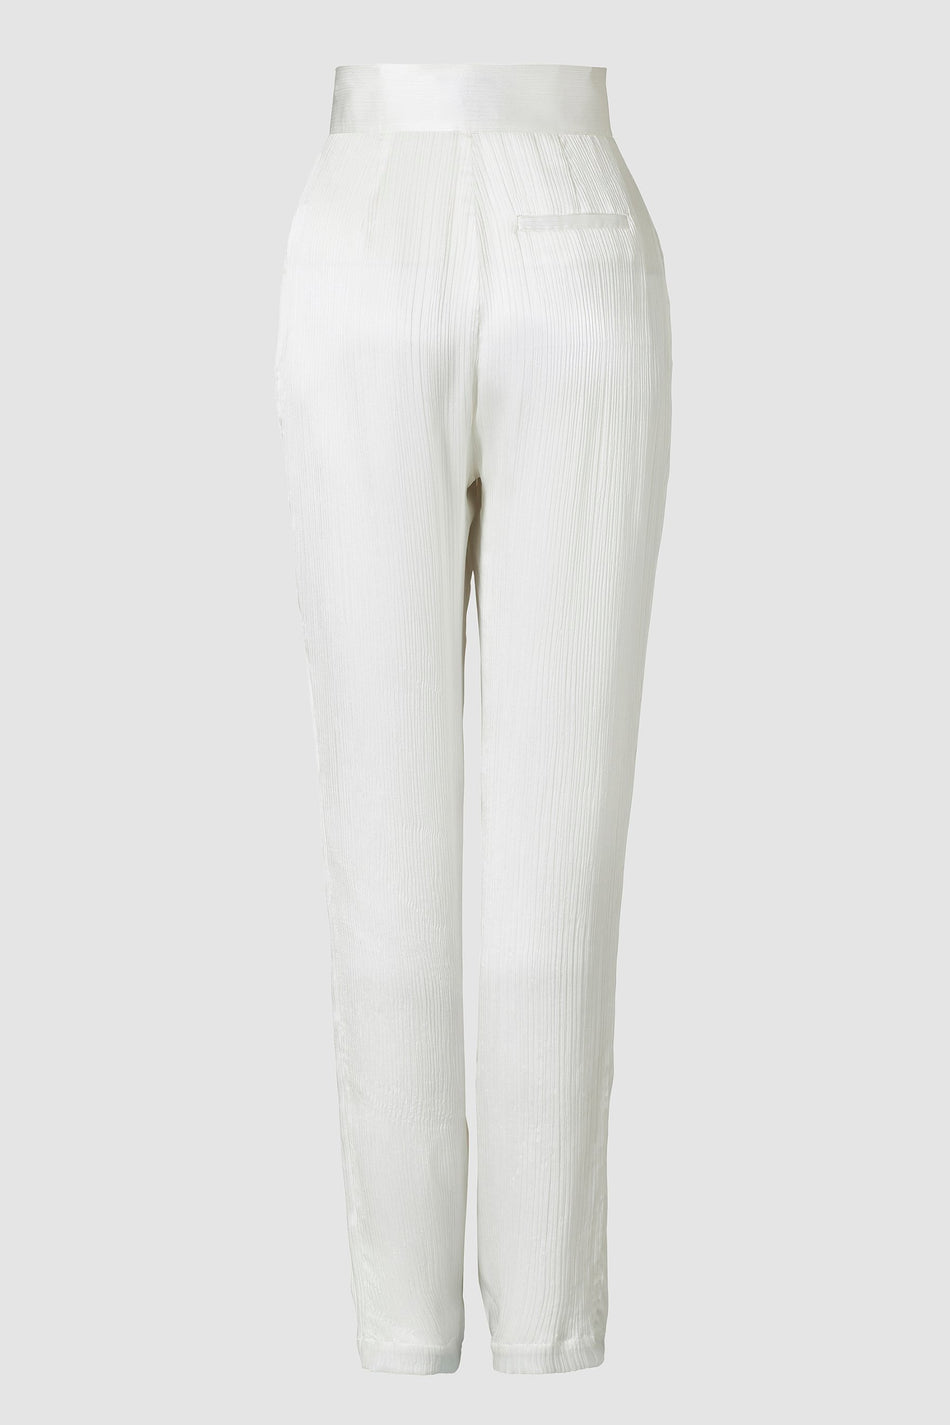 Tove Remi Silk Trouser White